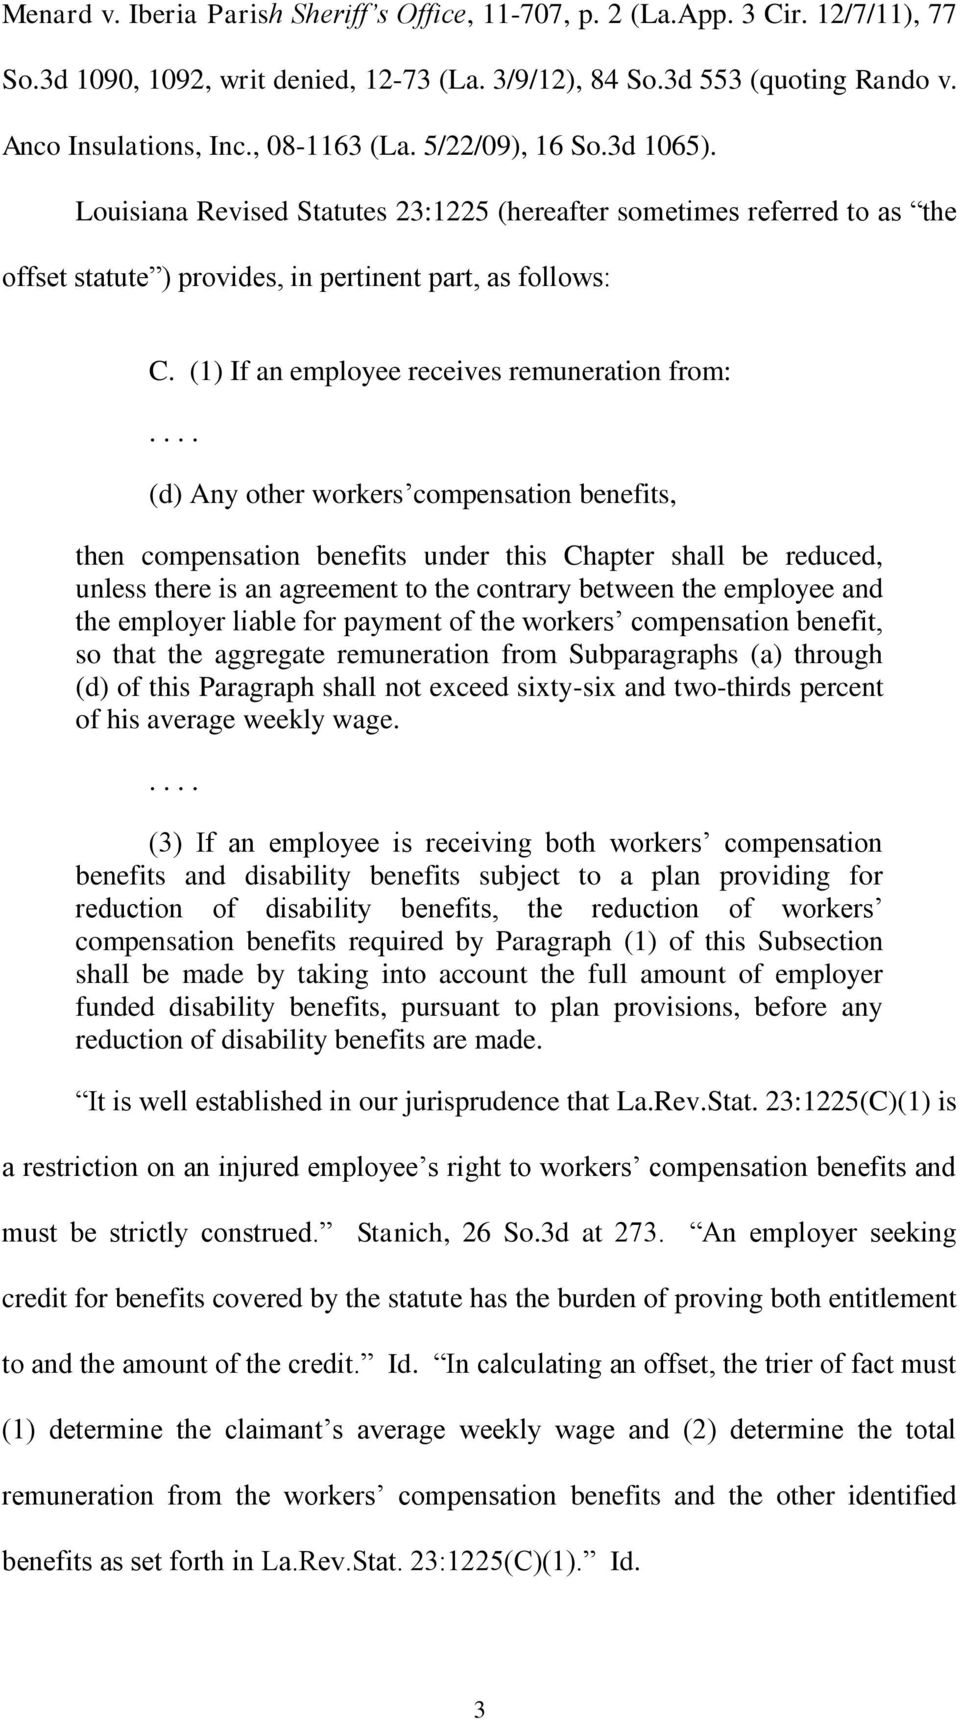 (1) If an employee receives remuneration from:.